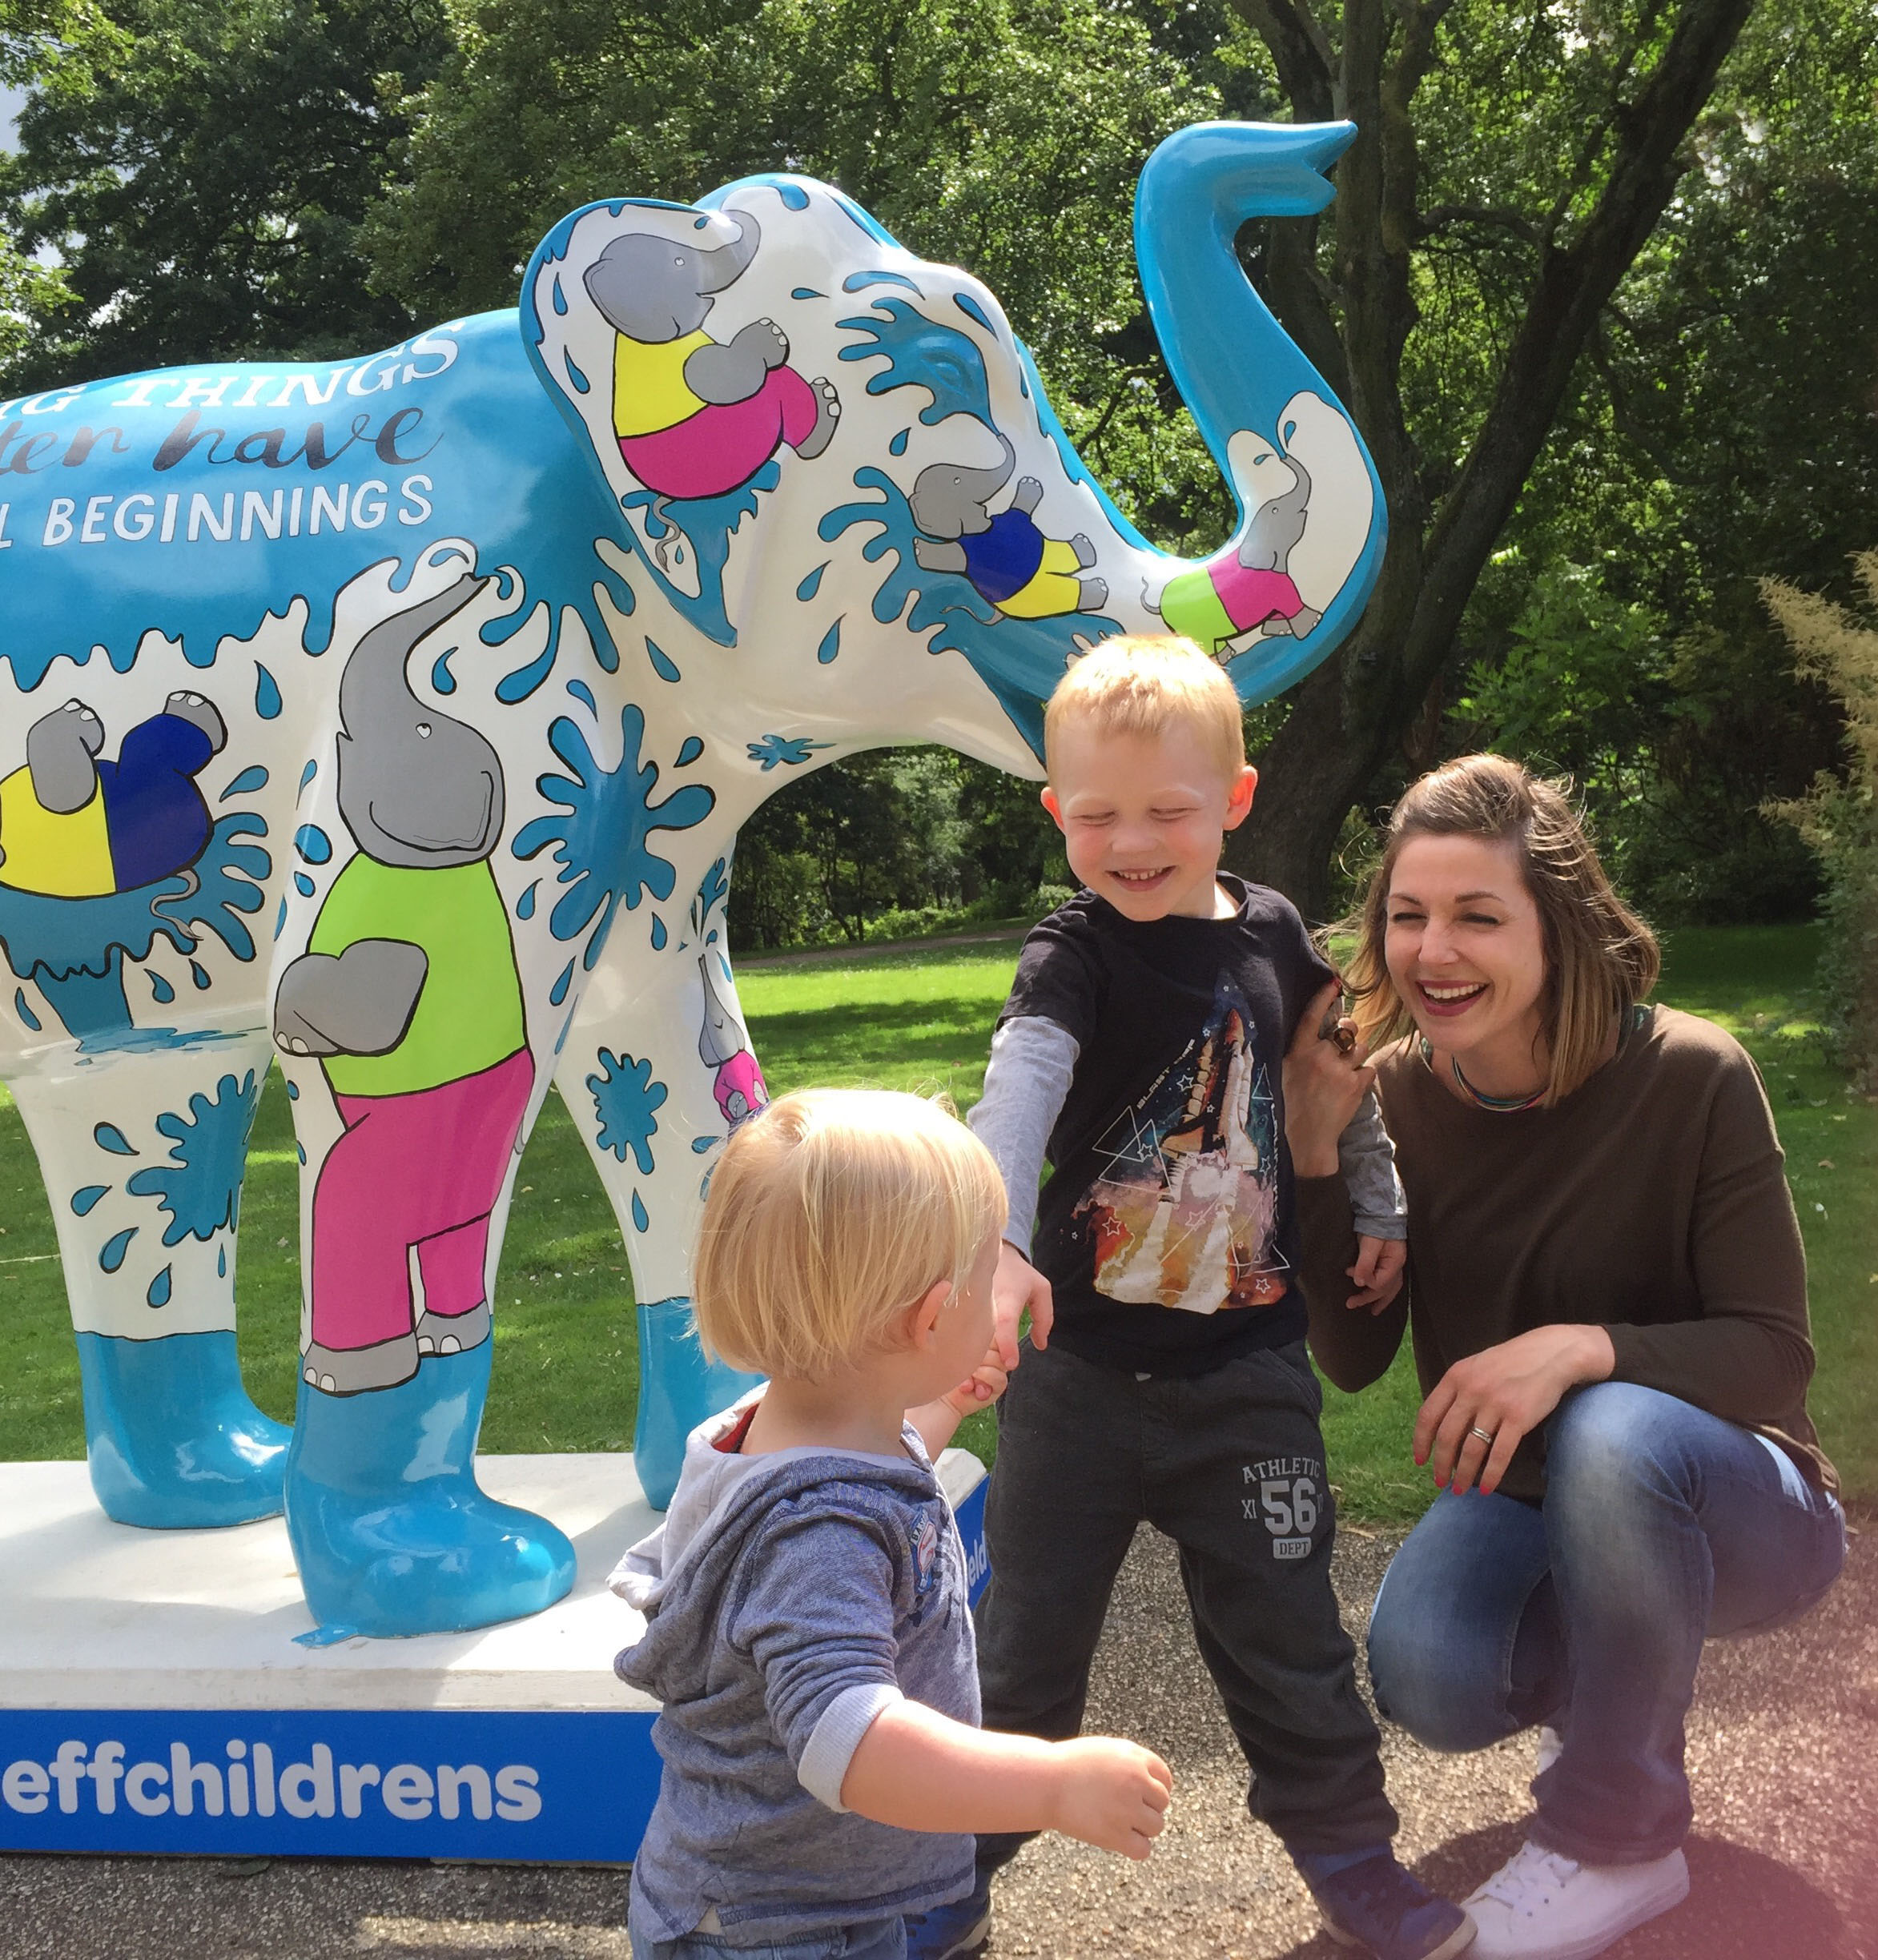 Here's me and my kids by this elephant I painted which sold for £7600 to raise money for the The Children's Hospital Charity in Sheffield. I had to see that money go towards saving lots of children's lives instead of taking my children to Disney Land, Bernard. It was so unfair.